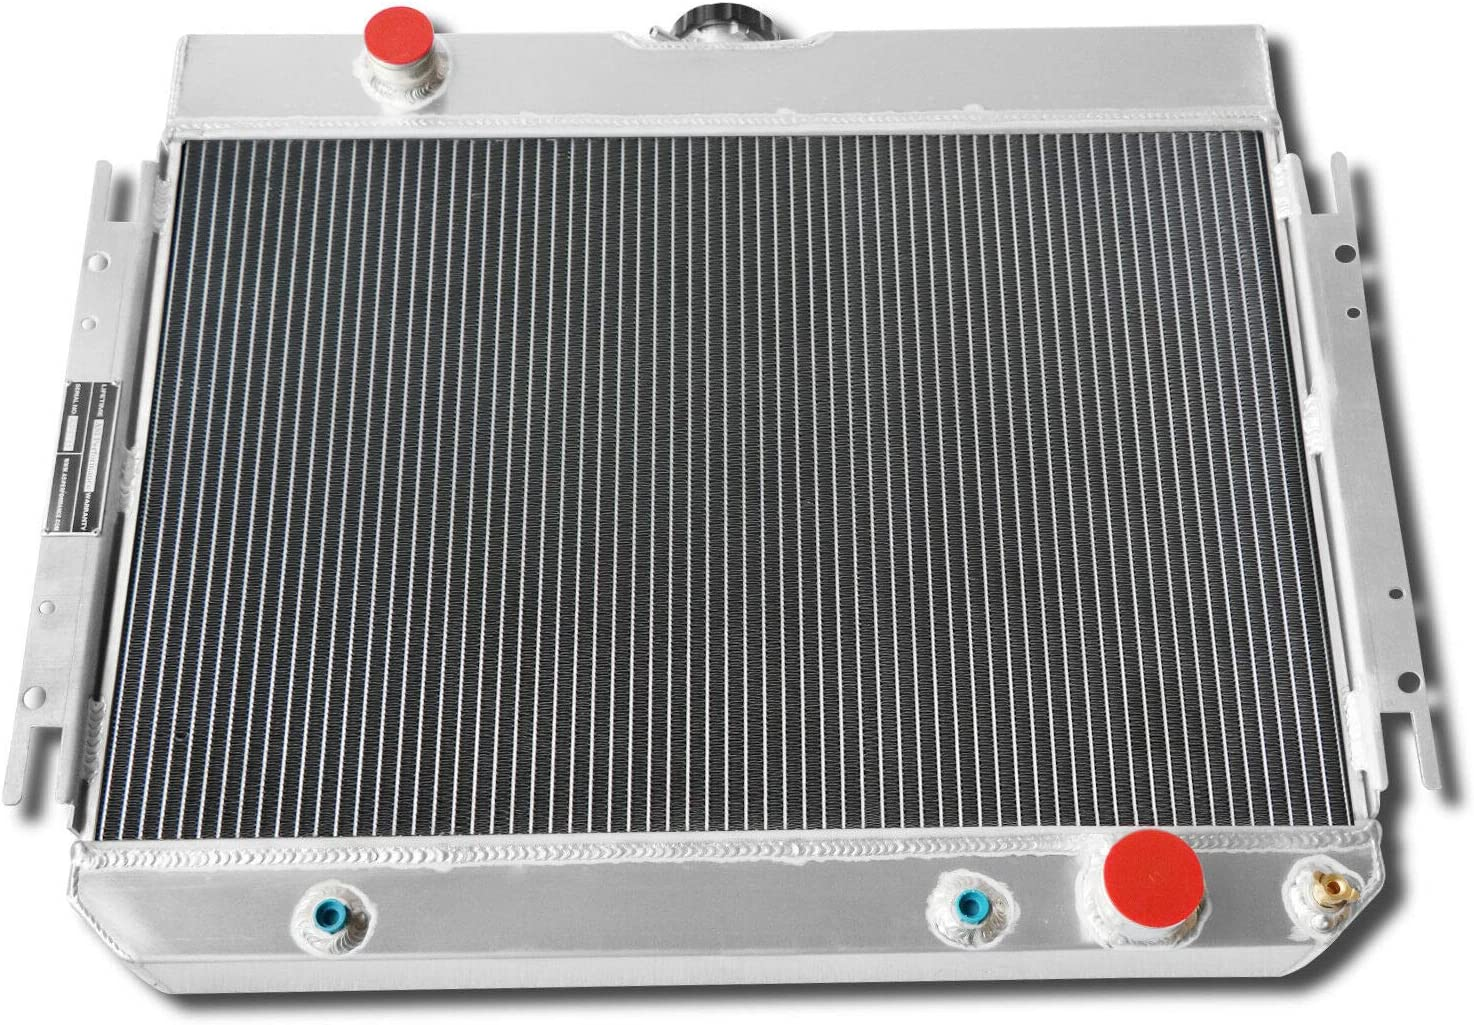 CoolingCare 4 Row Radiator 12 Fans for 1963-1968 Chevy Multiple Models Bel Air Caprice El Camino Impala Louver Shroud